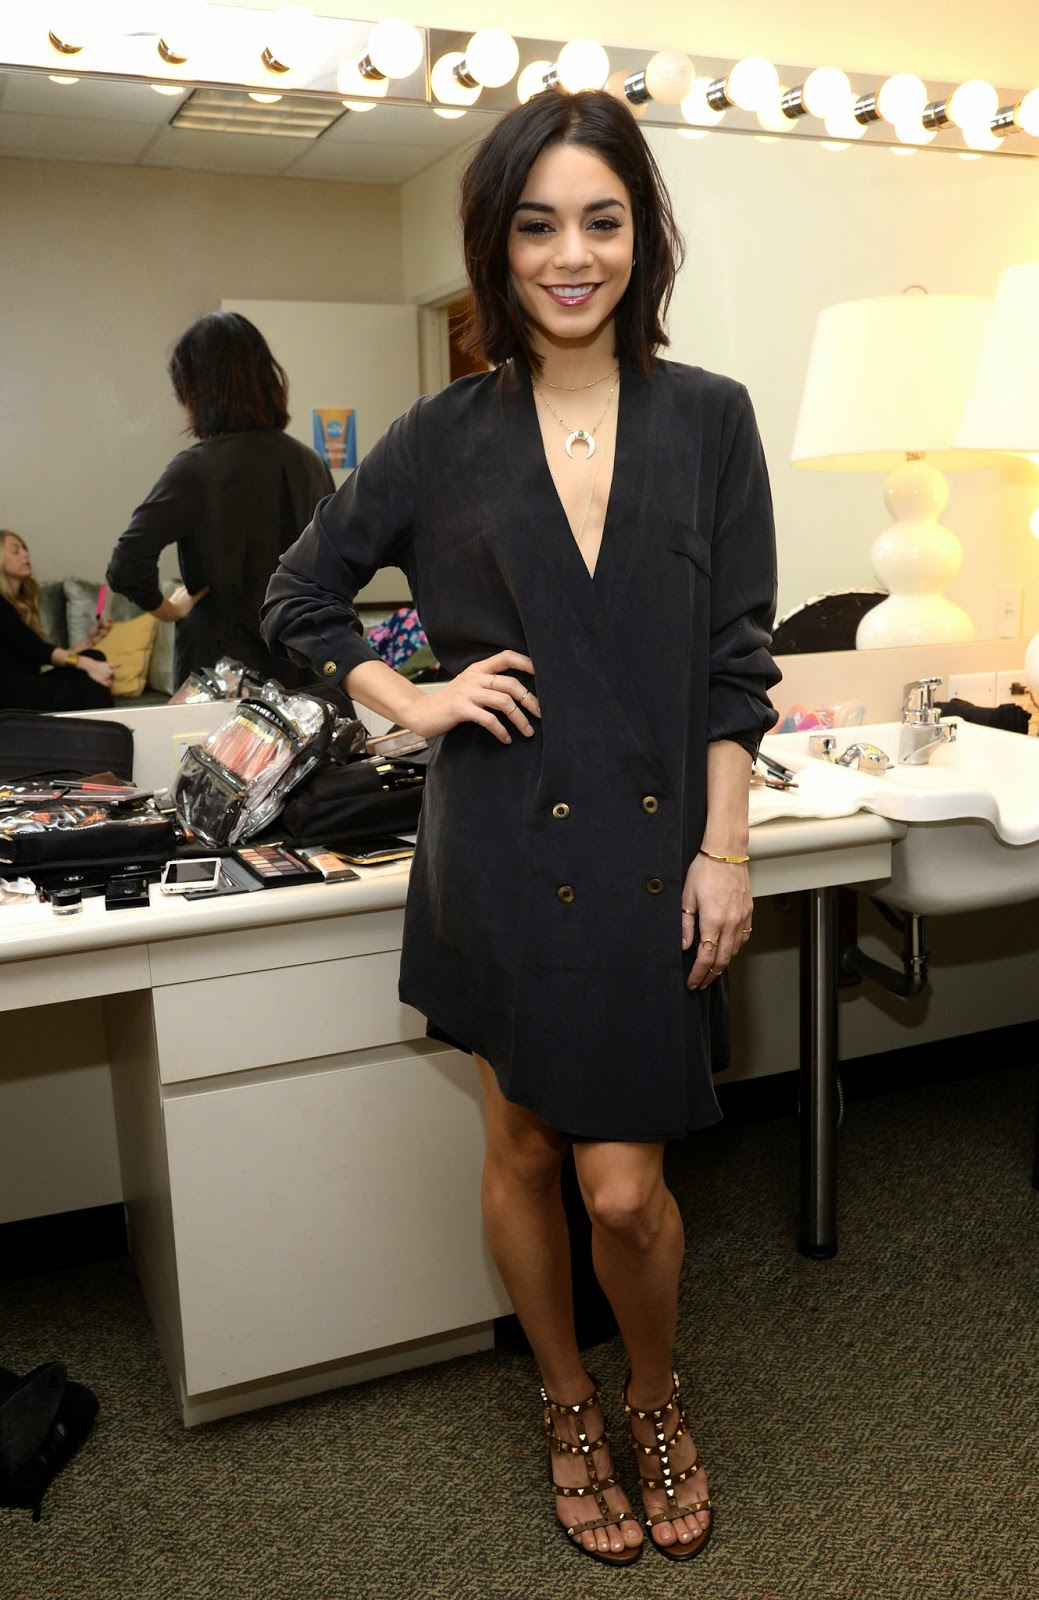 Vanessa Hudgens at the abc studios make up room